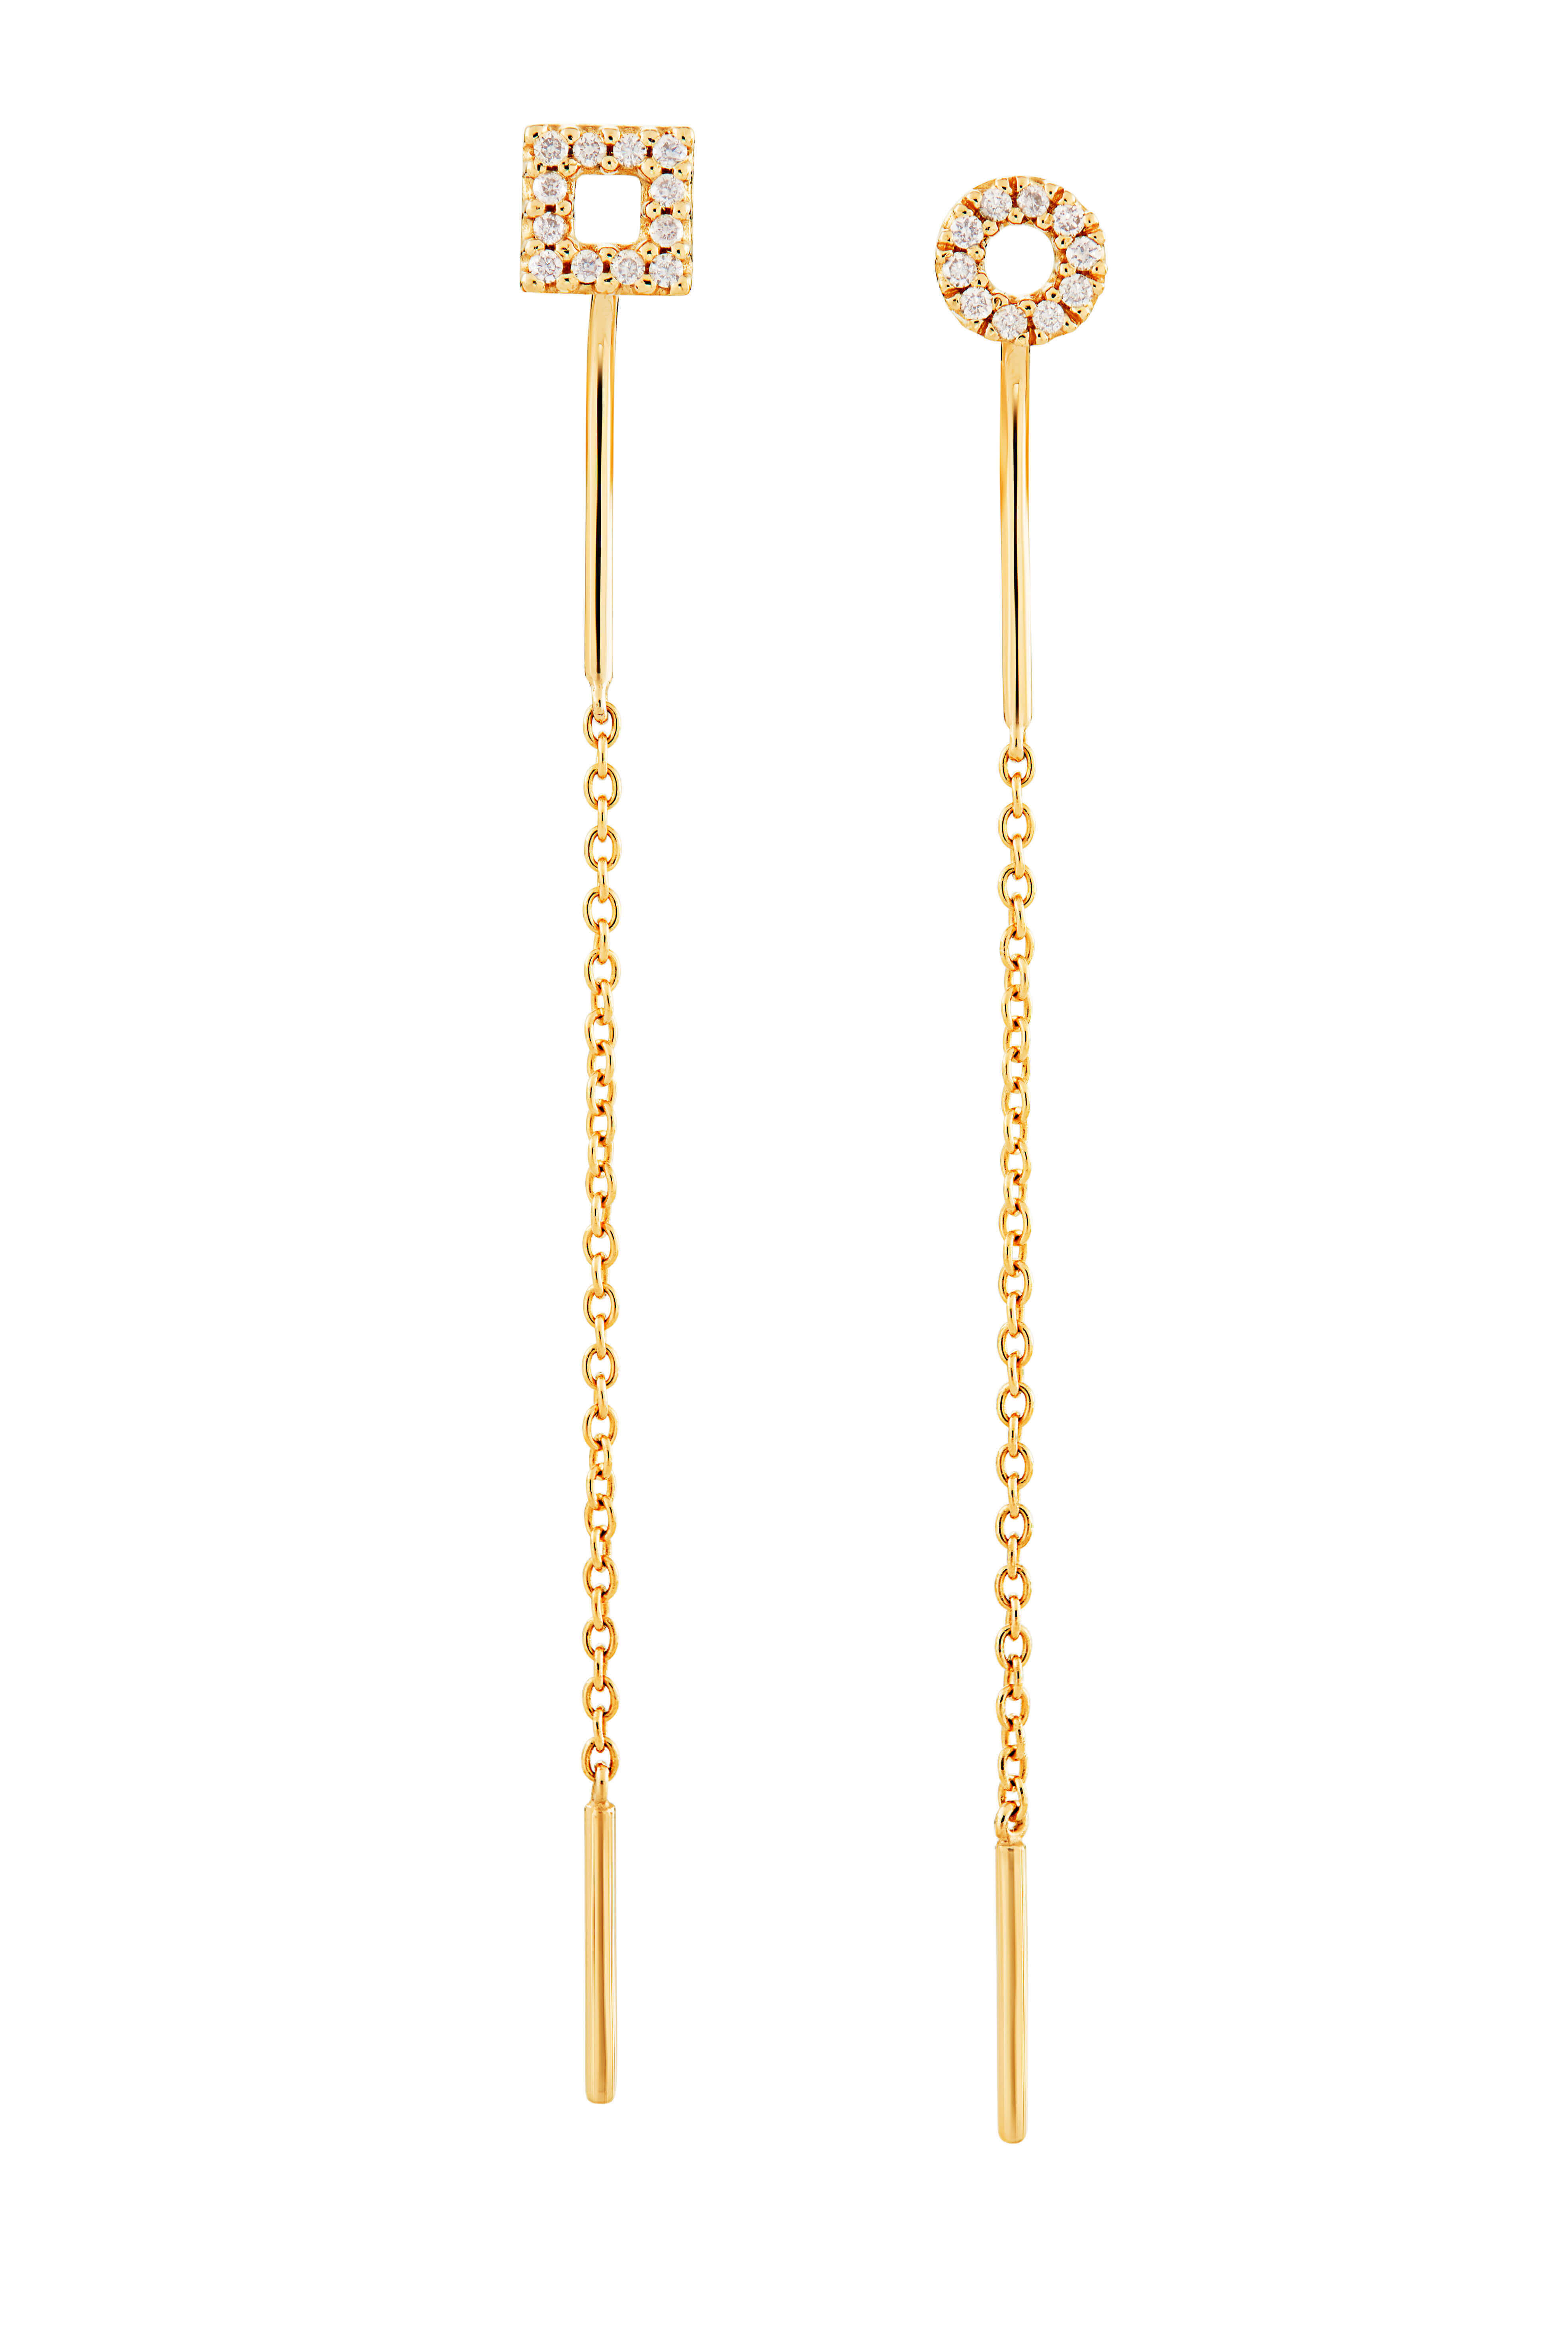 MyCollection_H.Stern_-_earrings_in_18K_yellow_gold_with_diamonds_accents_(B2B_209391)